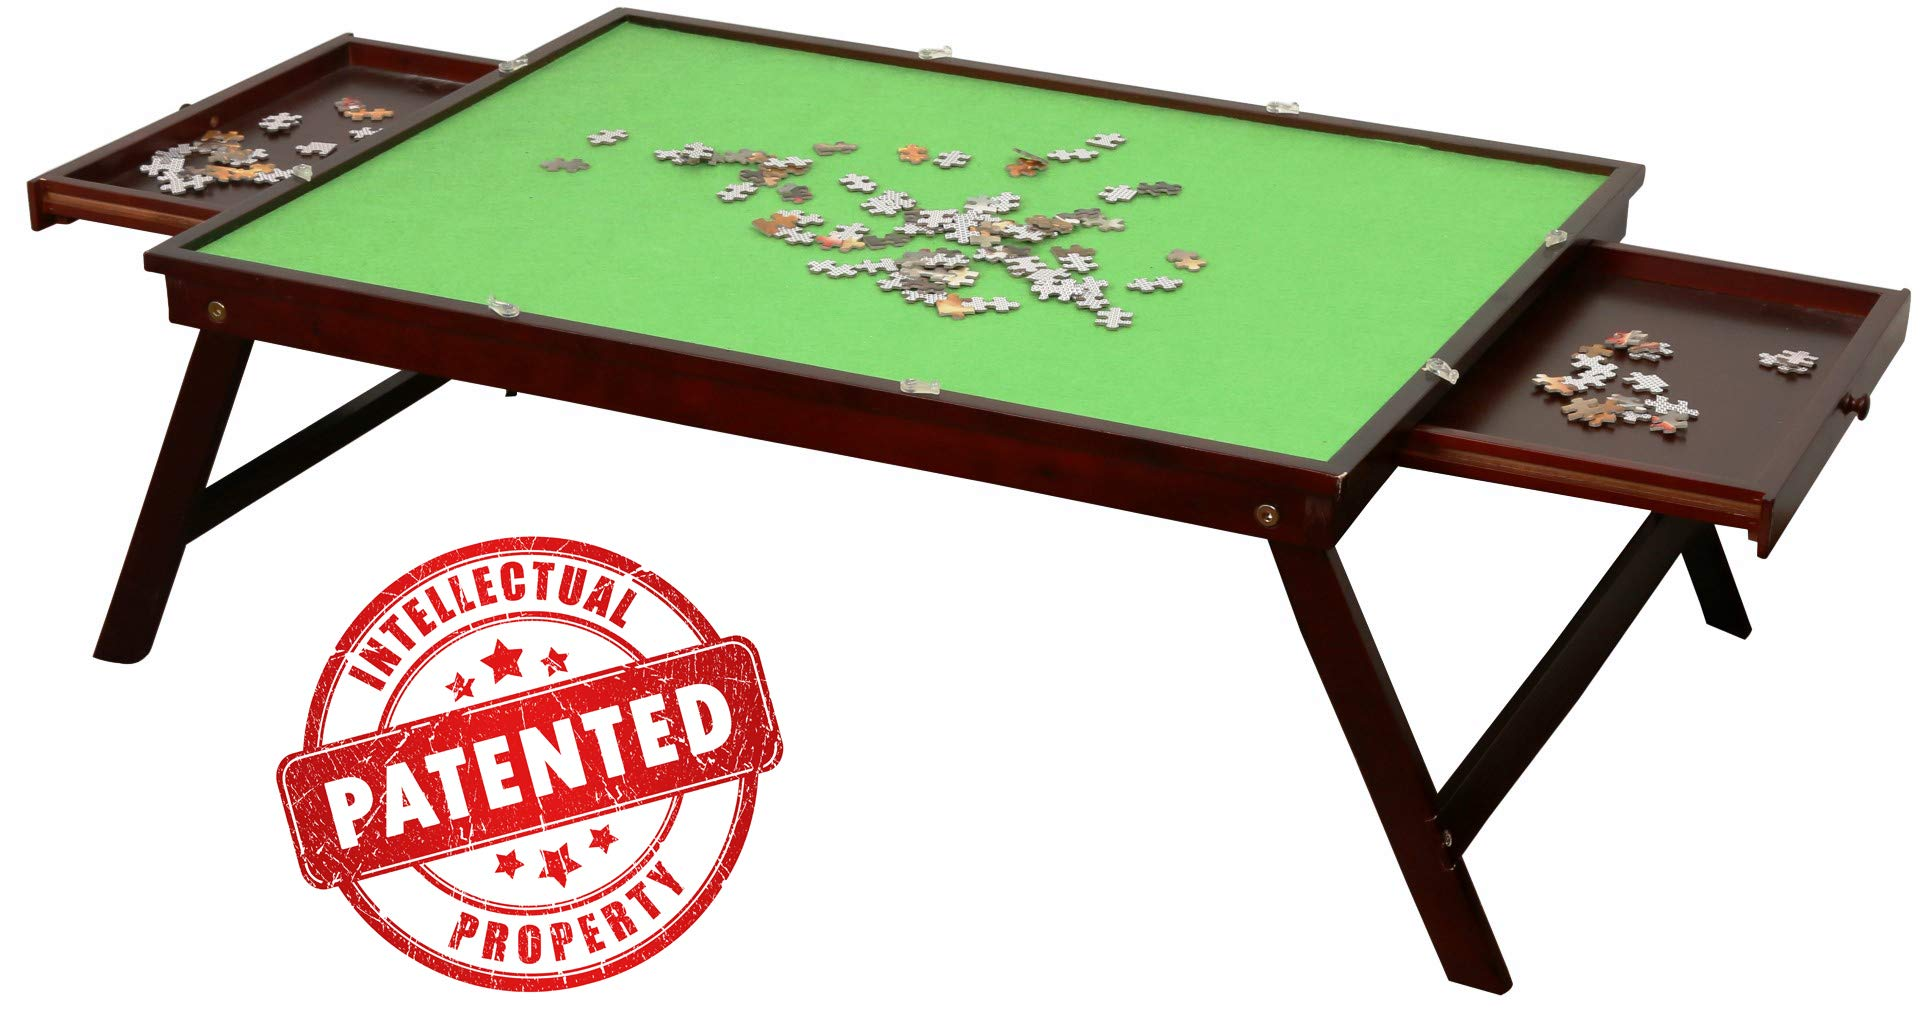 Wooden Jigsaw Puzzle Table for Adults & Kids, Collapsible Jigsaw Puzzle Table and Storage System, Portable Table for Puzzle Games with 2 Storage Drawers & Cover, Home Furniture - Puzzle 1000 Pcs by Shougui